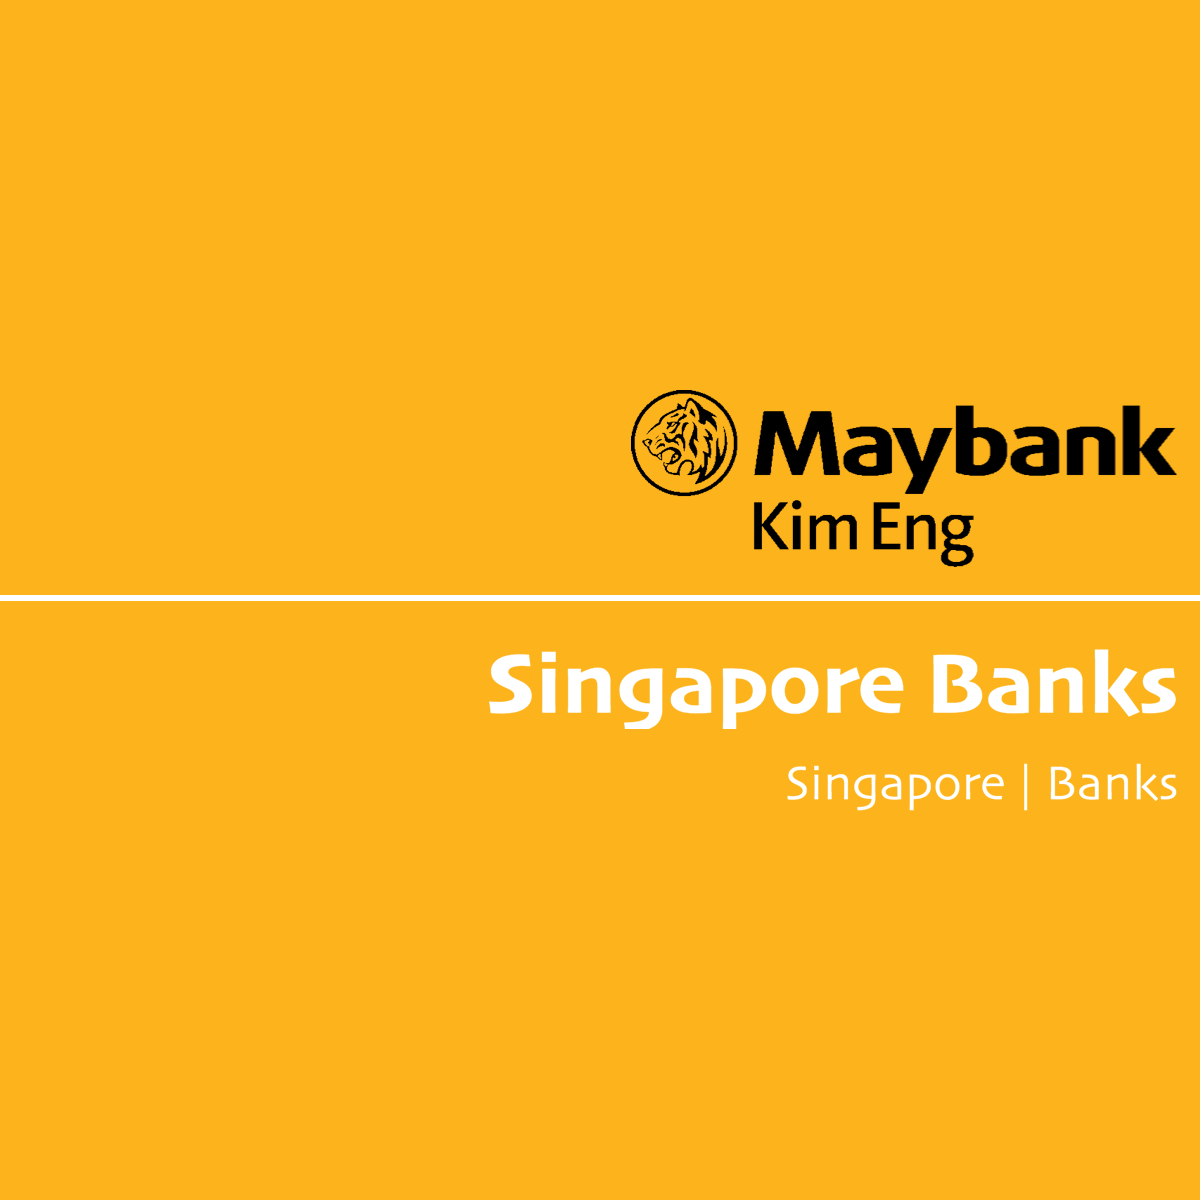 Singapore Banks - Maybank Kim Eng 2018-03-20: Clear Skies